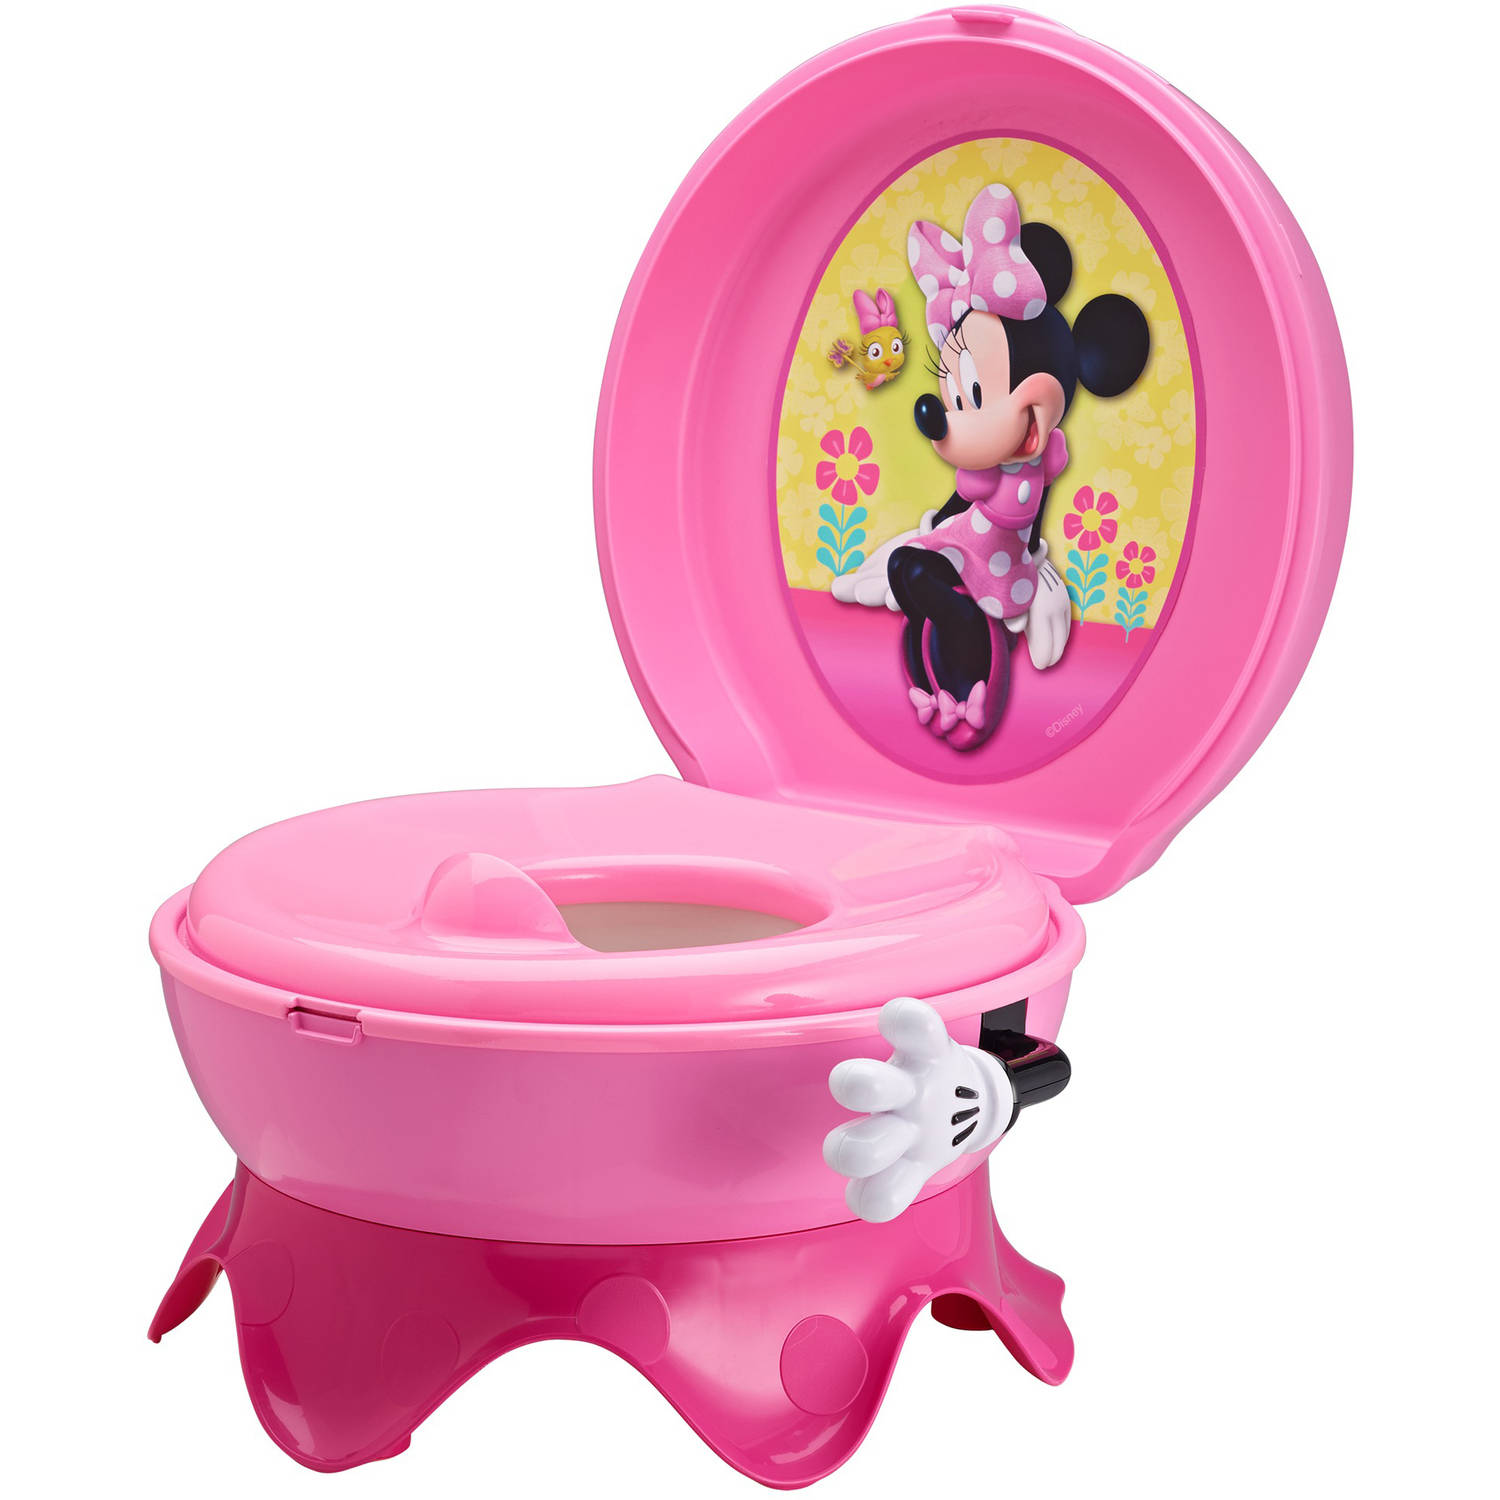 The First Years Disney Baby Minnie Mouse 3-in-1 Celebration Potty System